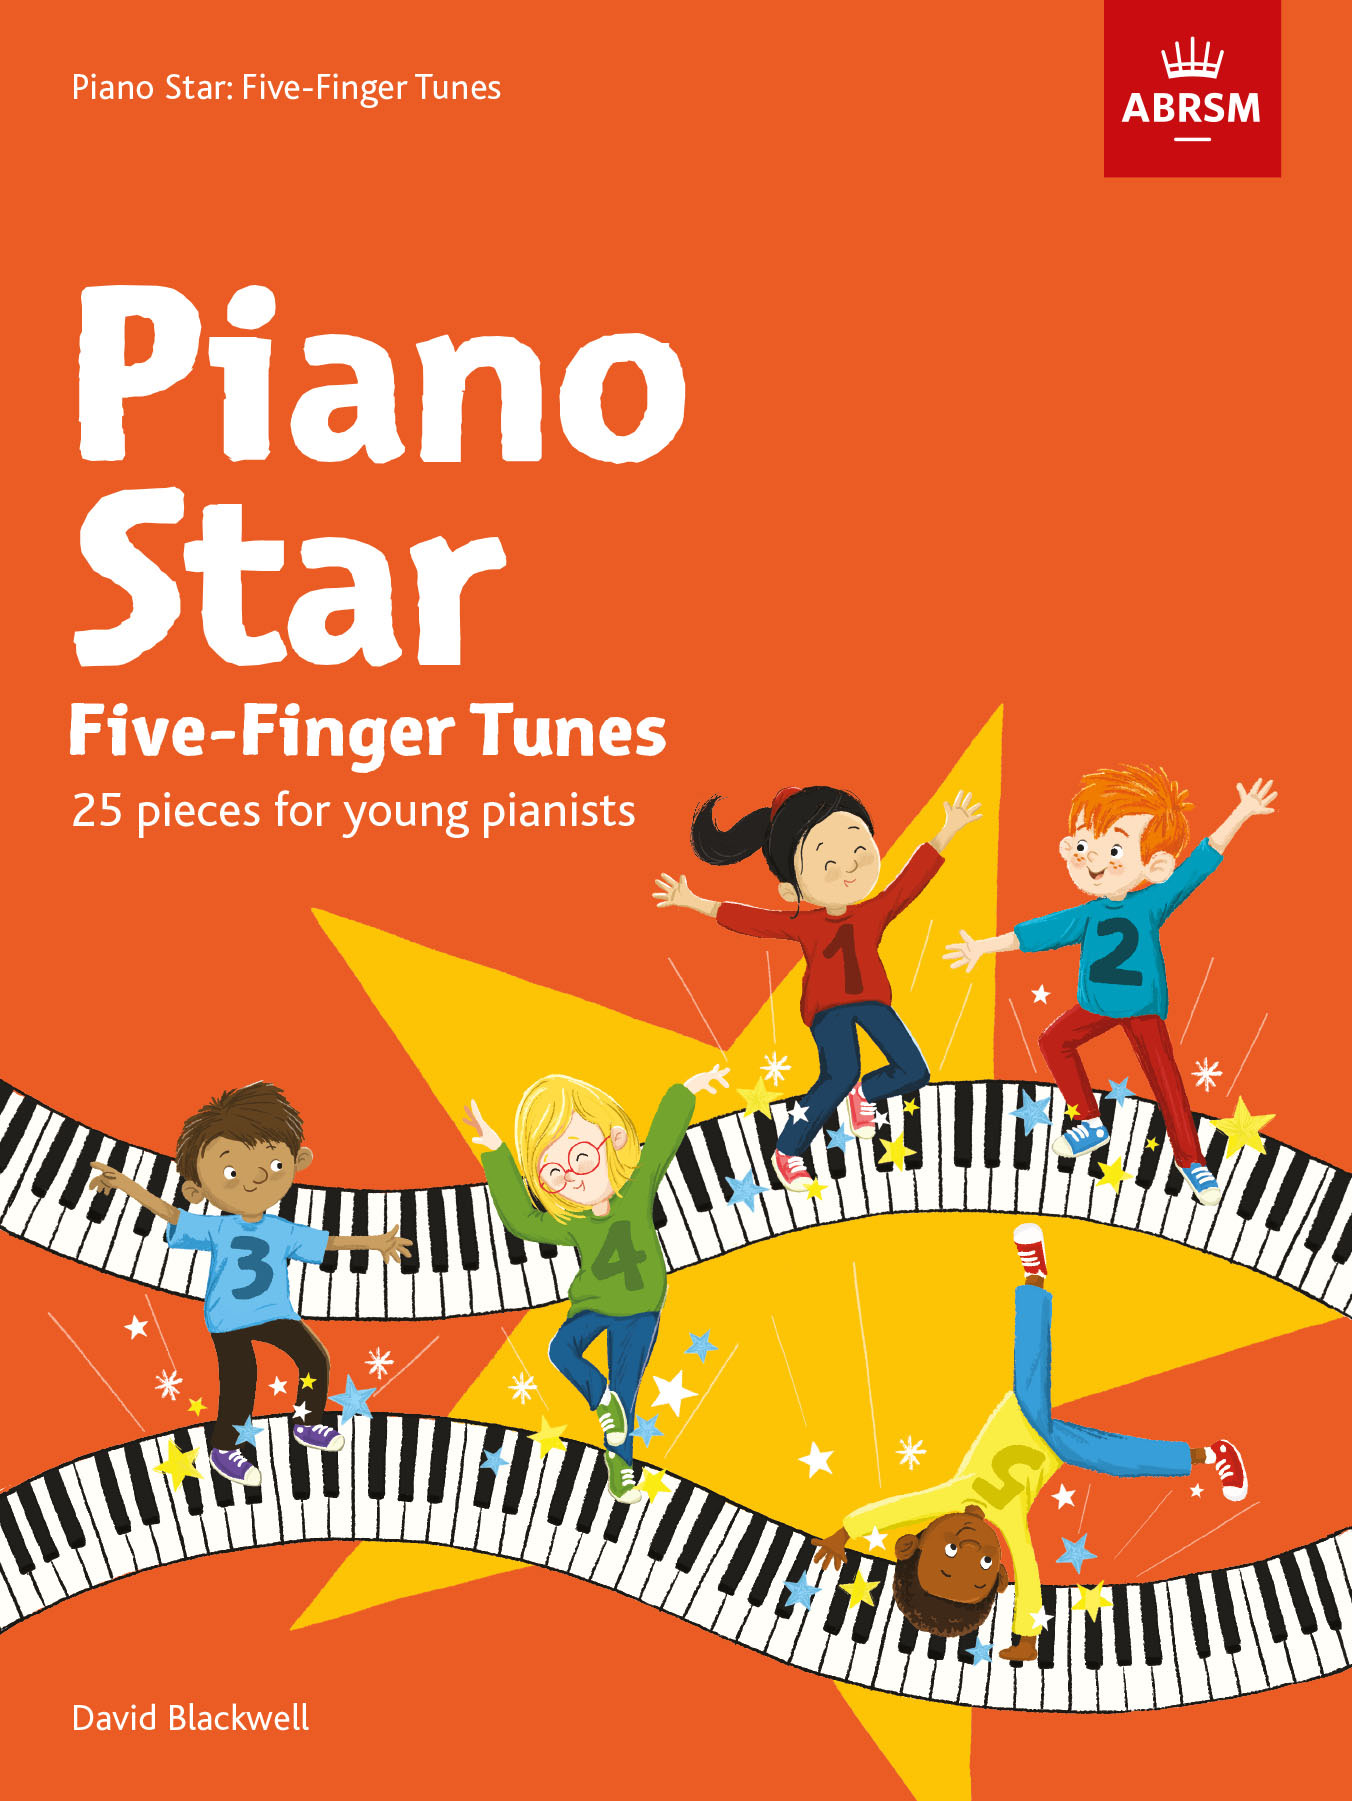 Piano Star Five-Finger Tunes